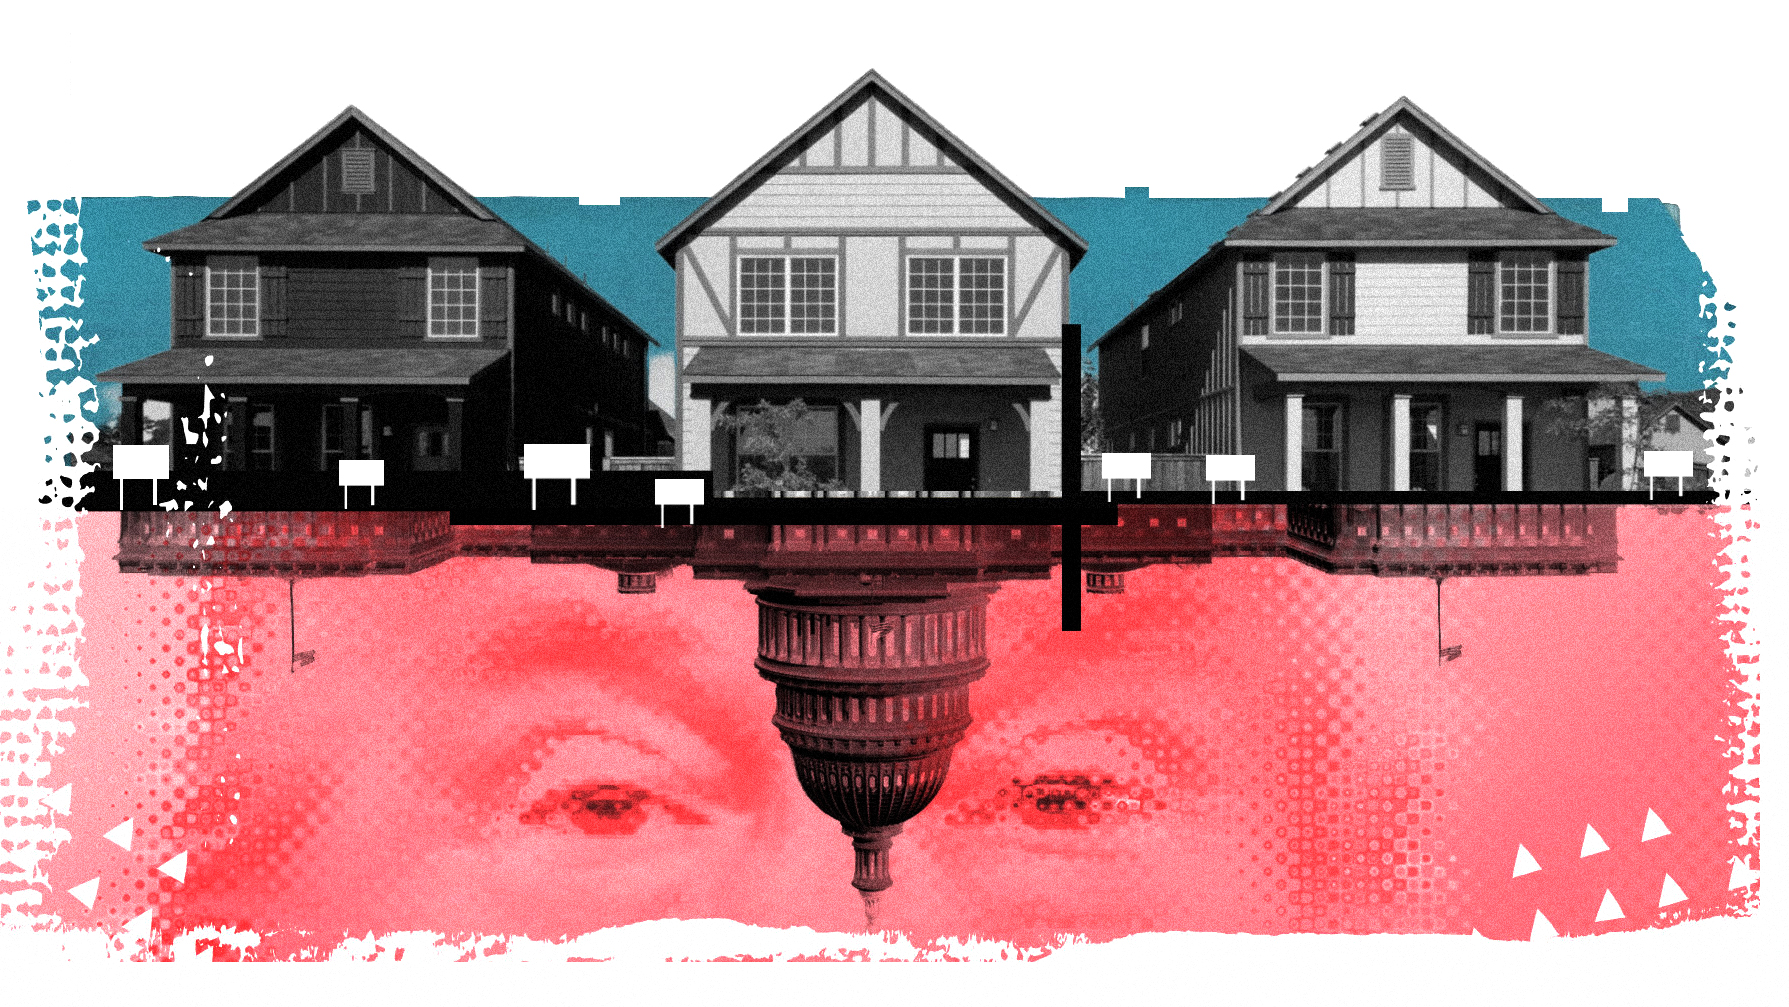 Trump and the suburbs